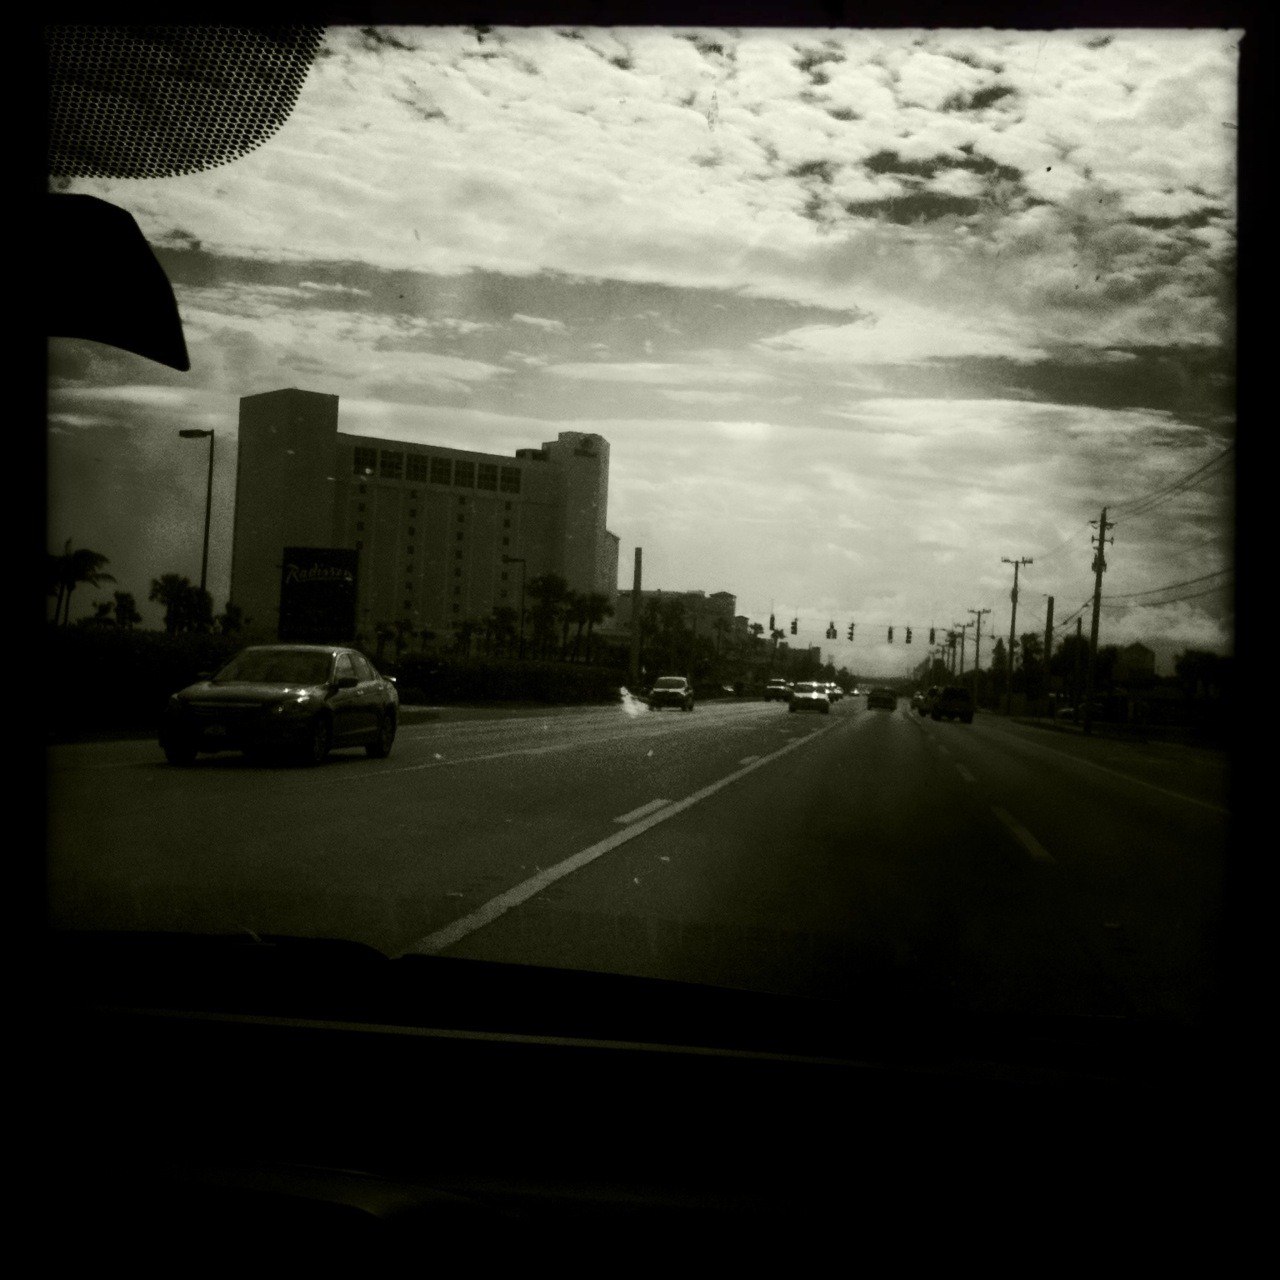 A1A, Brevard Co Fl John S Lens, Claunch 72 Monochrome Film, No Flash, Taken with Hipstamatic